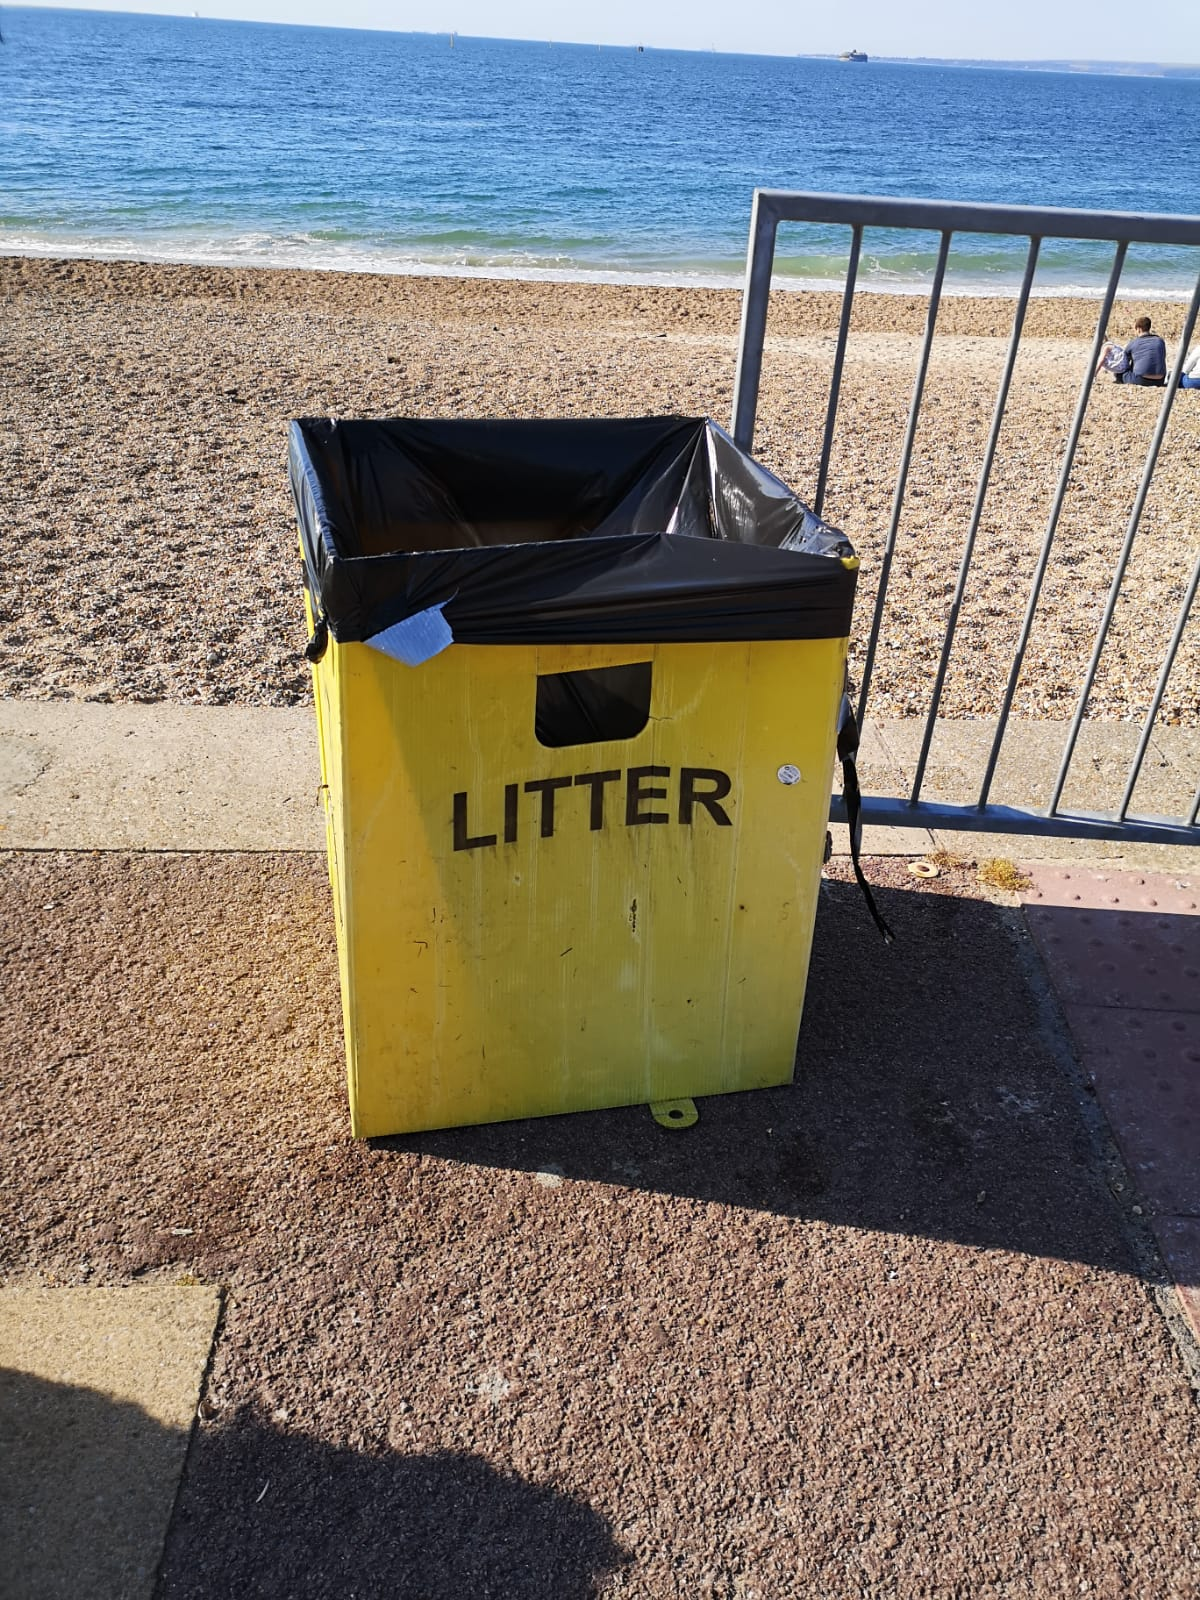 Additional, larger bins now in place along the seafront